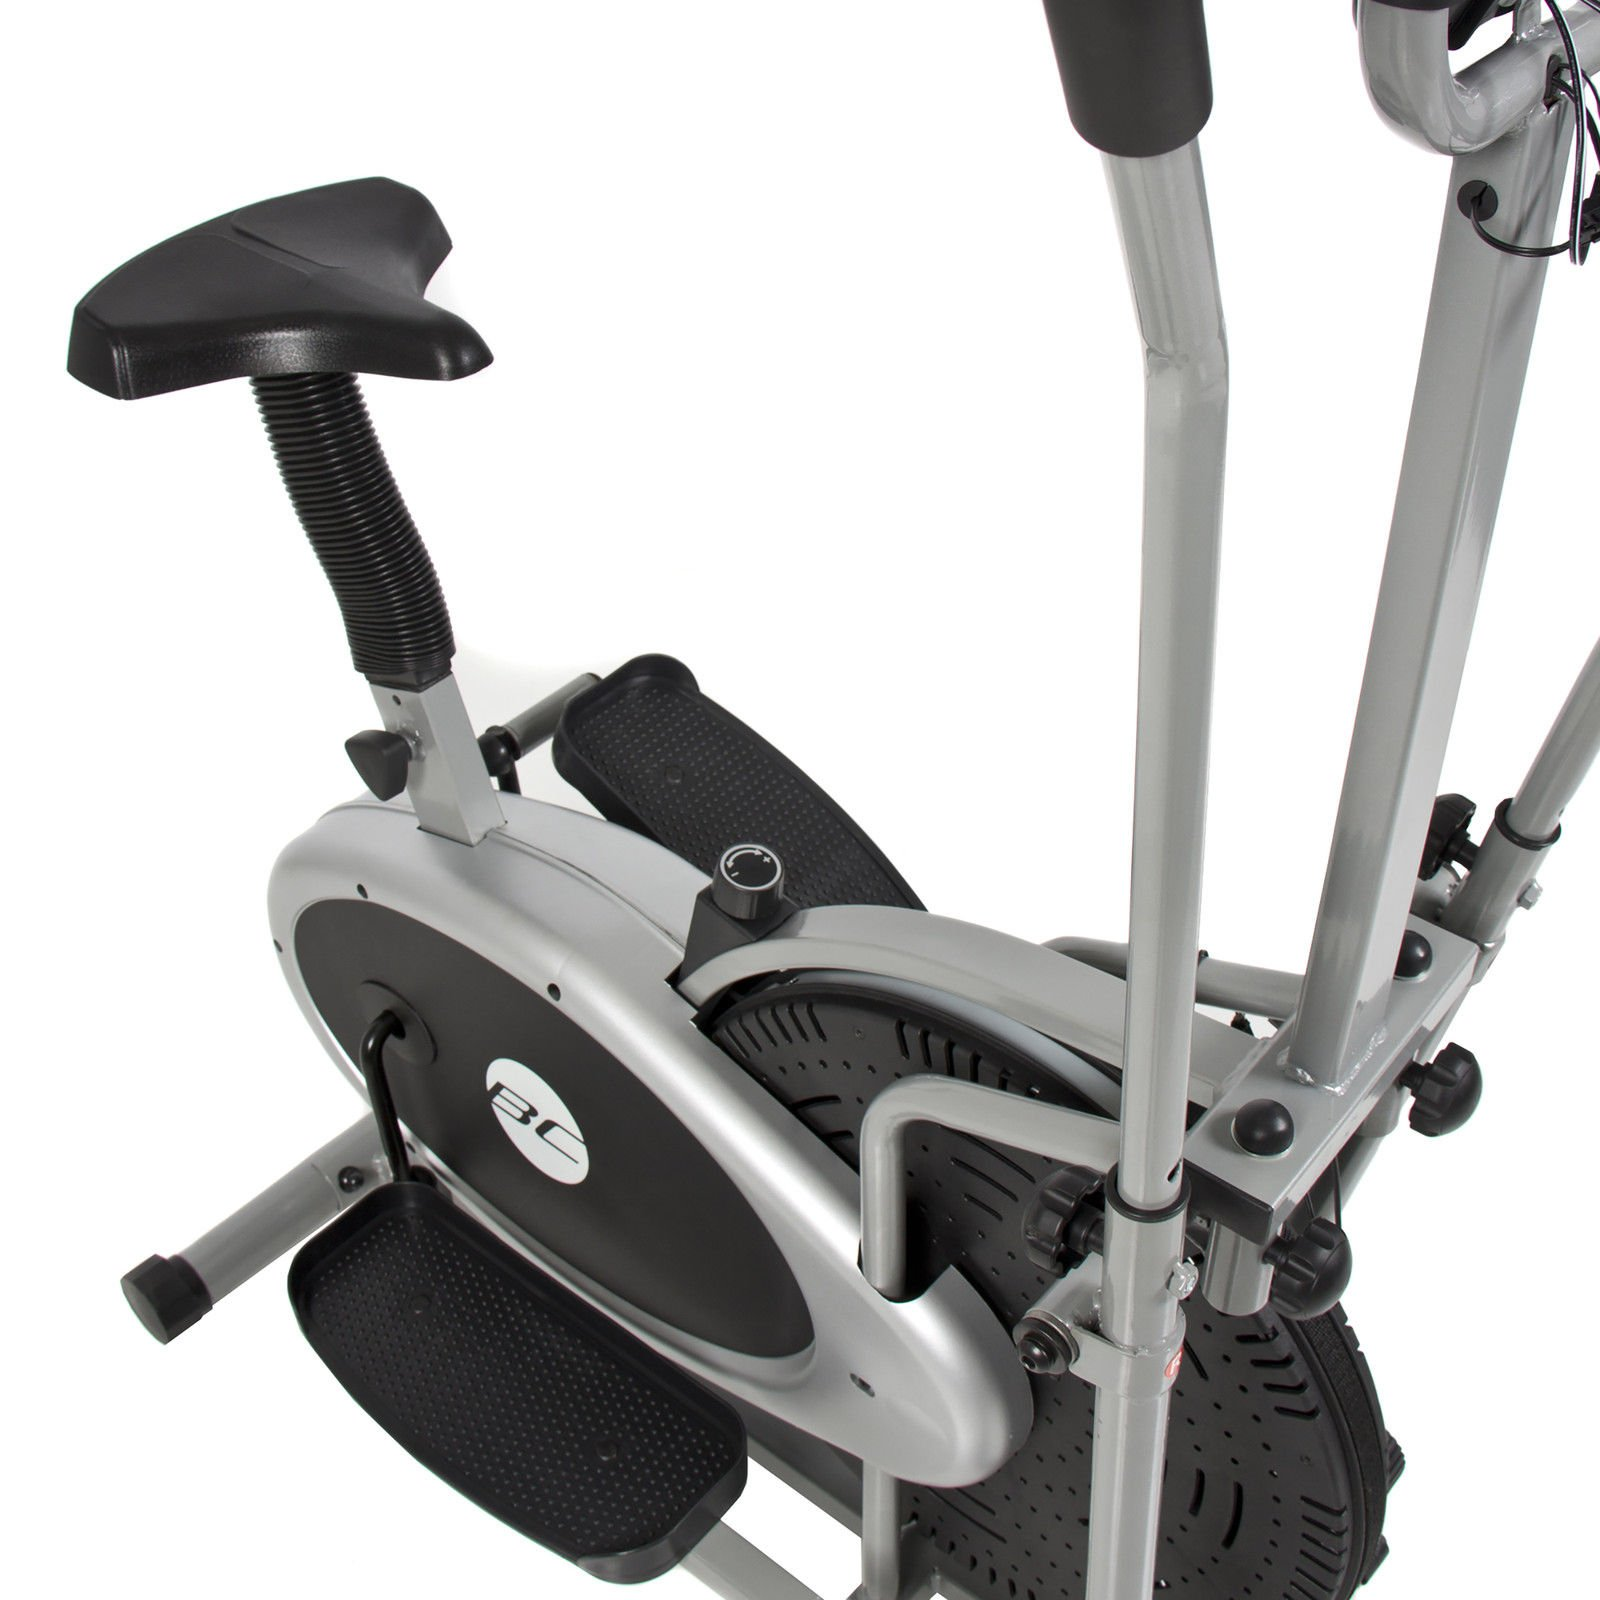 Alitop Elliptical Bike 2 IN 1 Cross Trainer Exercise Fitness Machine by Alitop (Image #3)